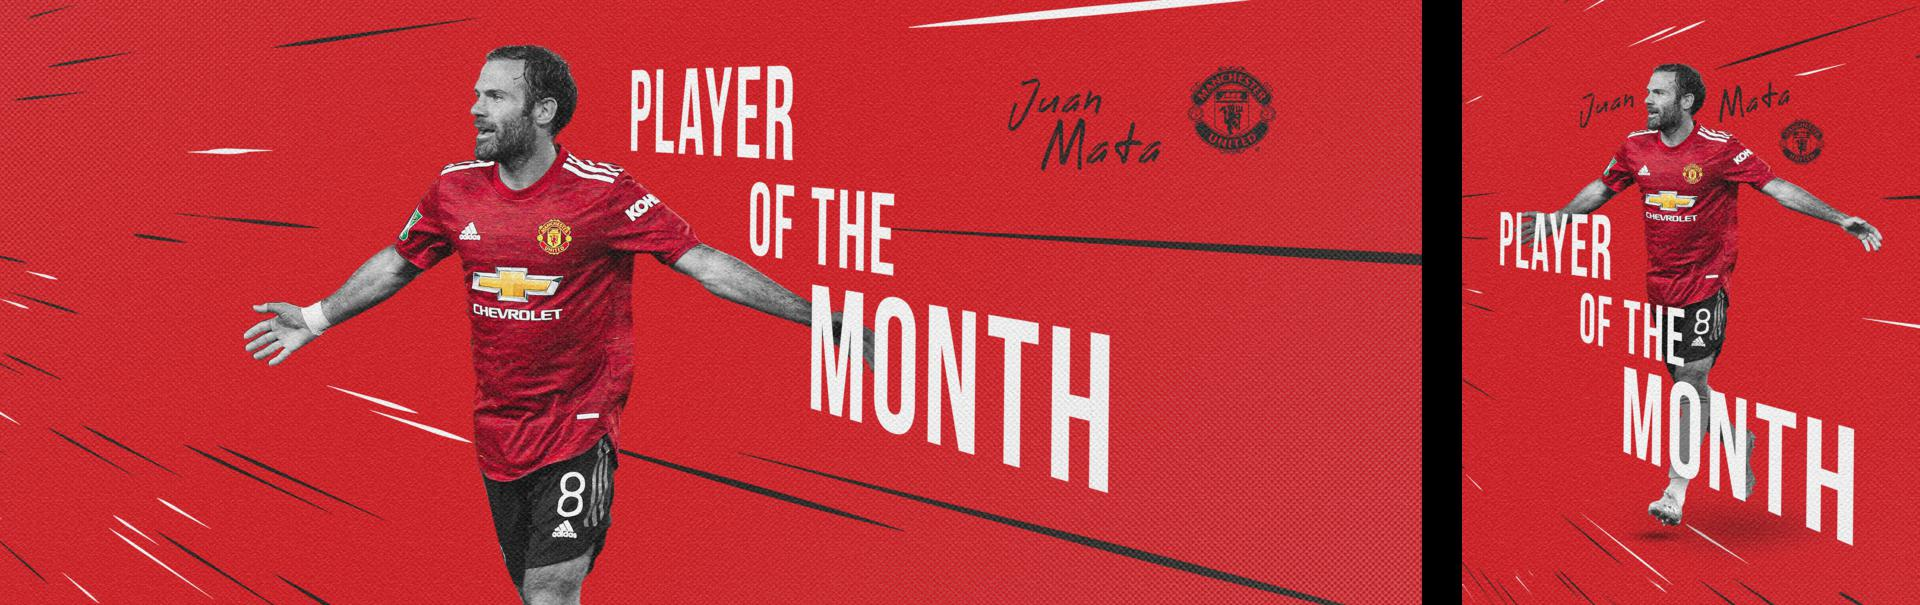 Juan Mata Player of the Month graphic.